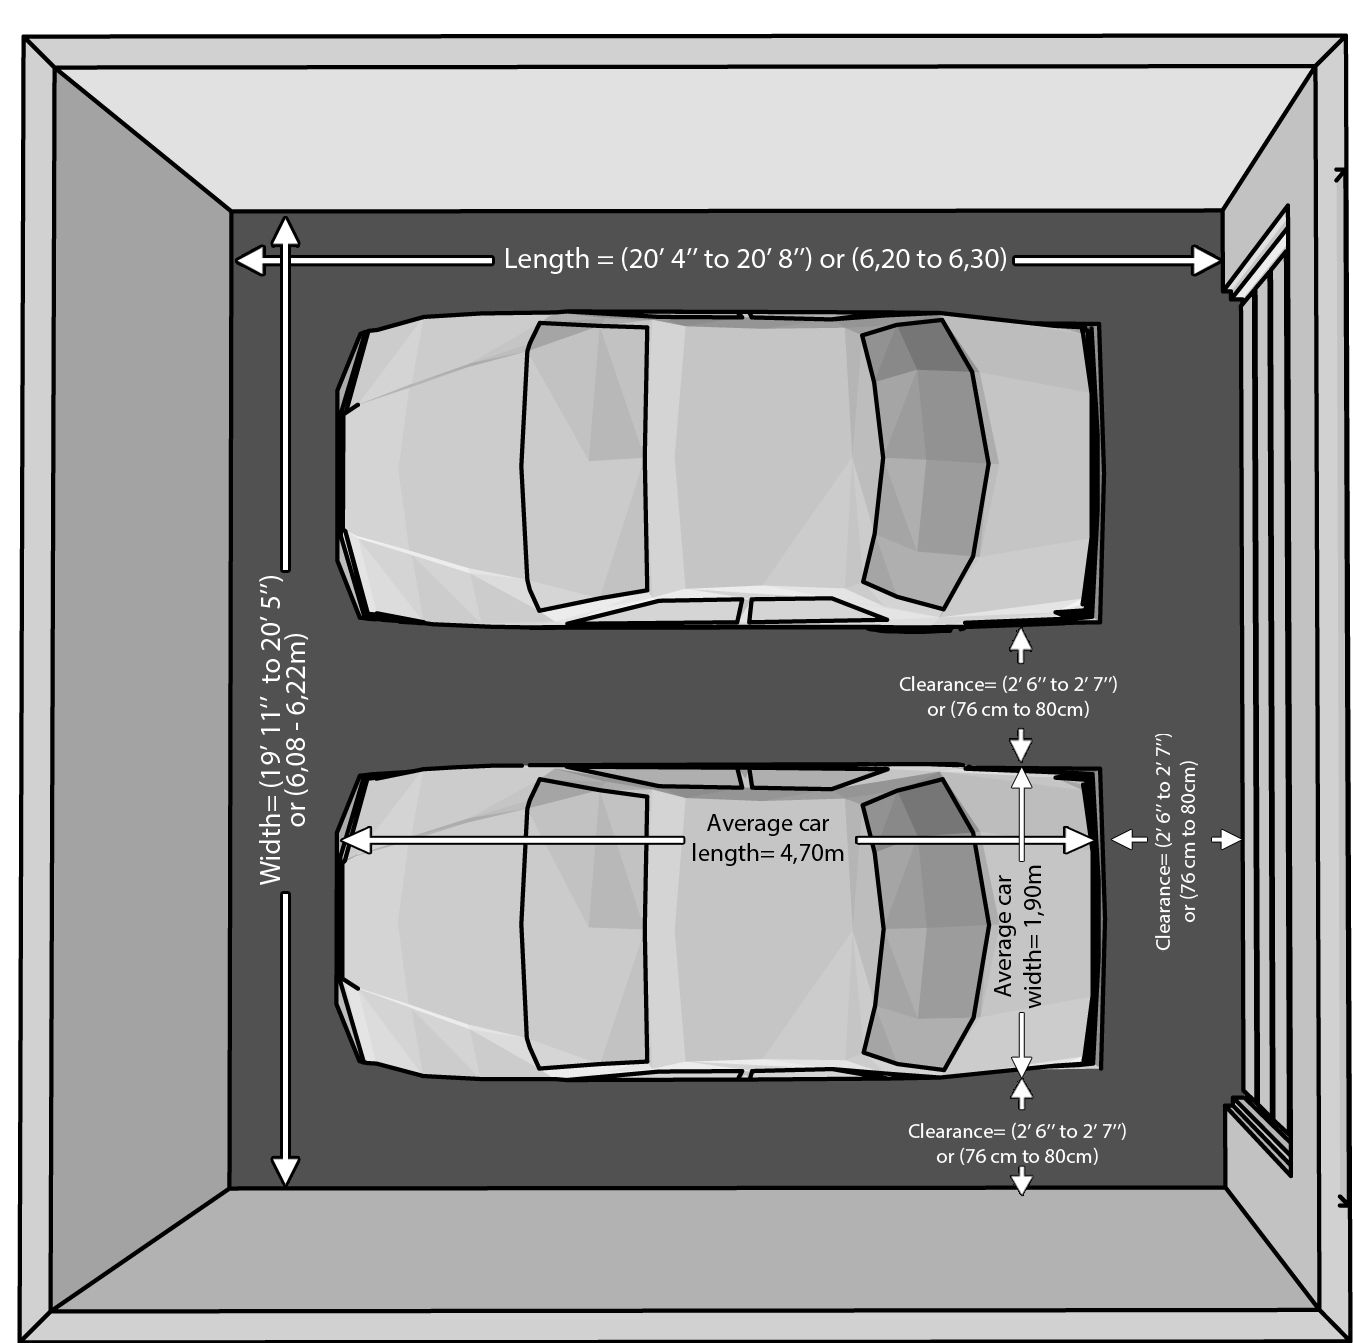 Standard Garage Door Sizes for Ergonomic Car Storage